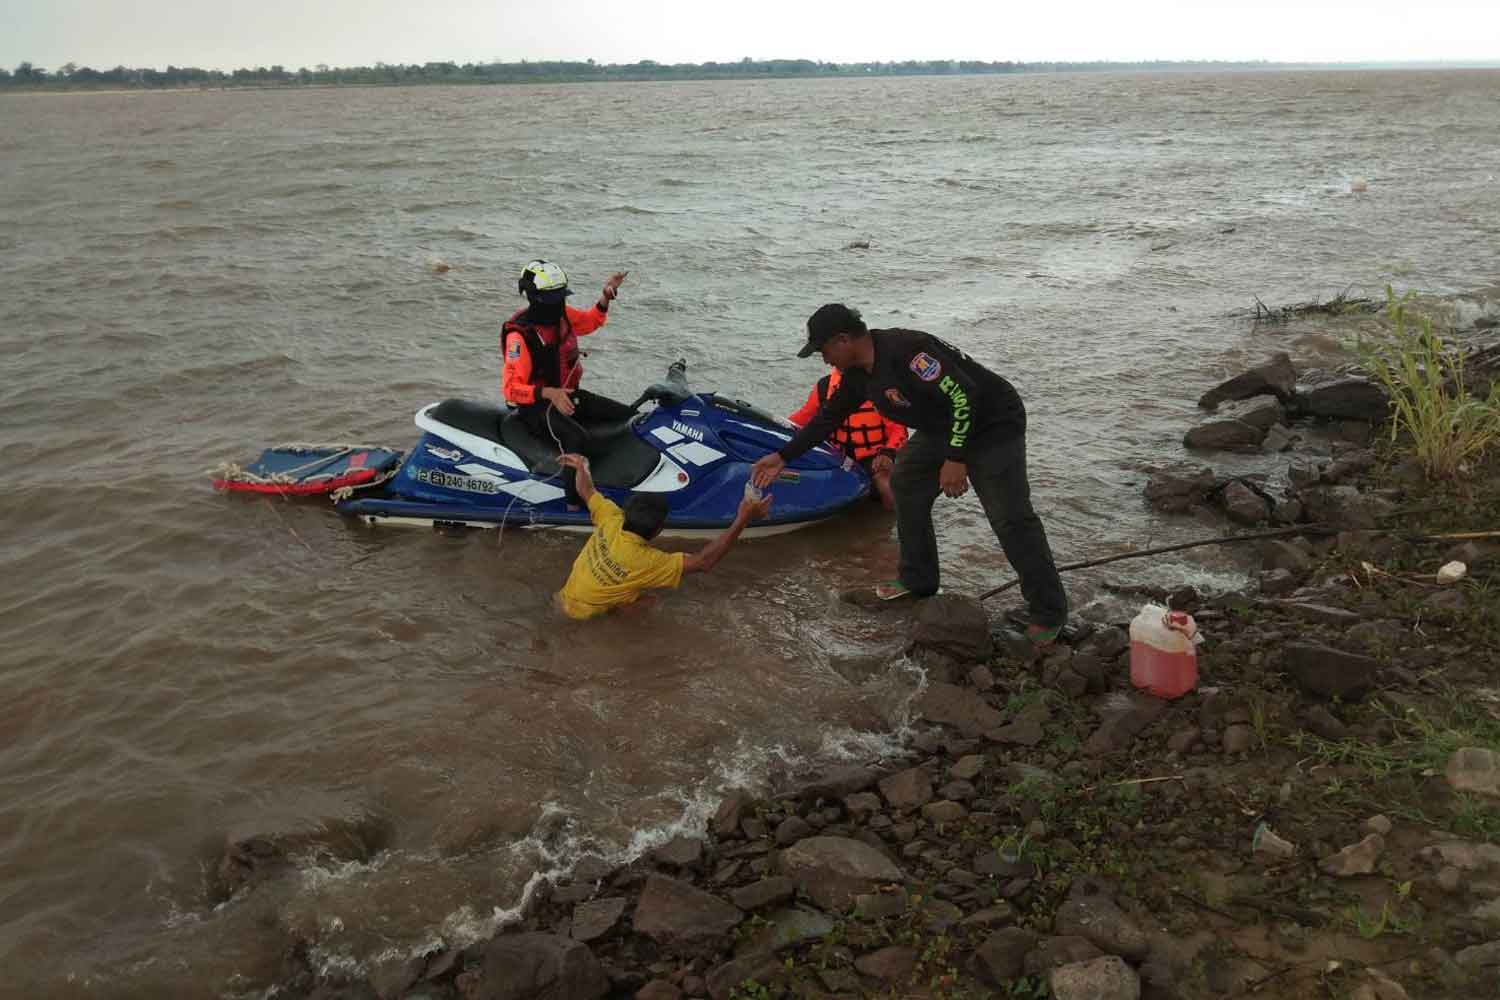 A rescued fisherman is brought to the bank of the Mekong river in Nakhon Phanom's That Phanom district. Three small fishing boats capsized in the middle of river during a storm on Monday afternoon. One fishermen drowned. (Photo: Pattanapong Sripiachai)